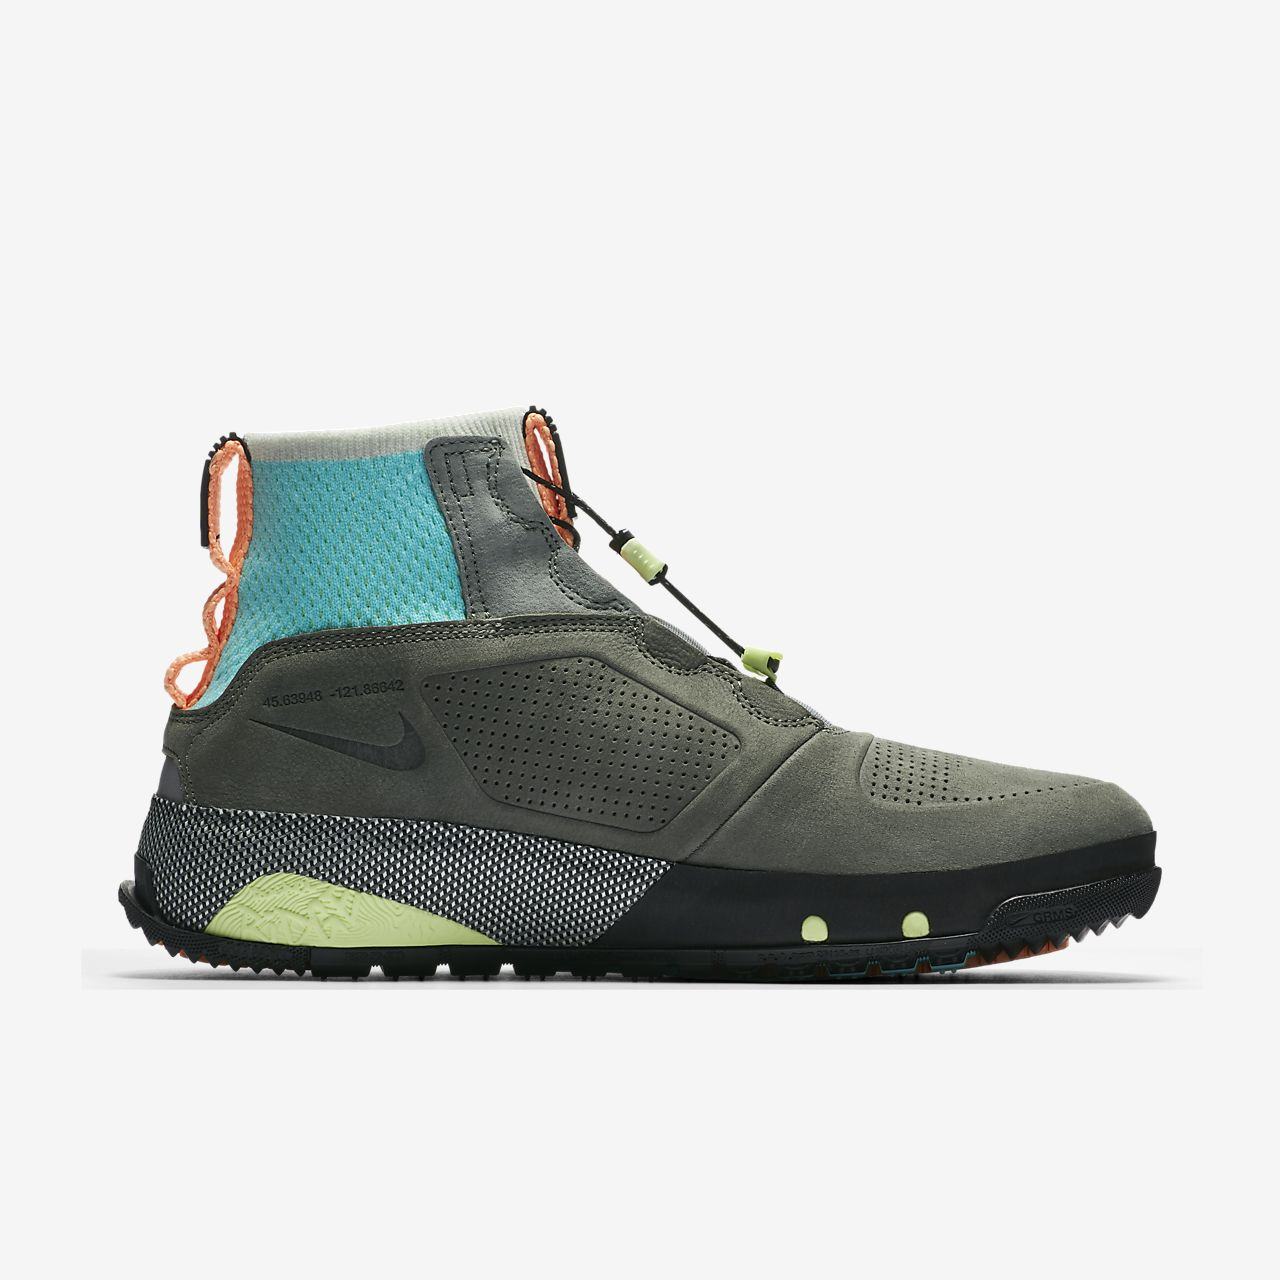 newest aa809 b274f ... Chaussure Nike ACG Ruckle Ridge pour Homme